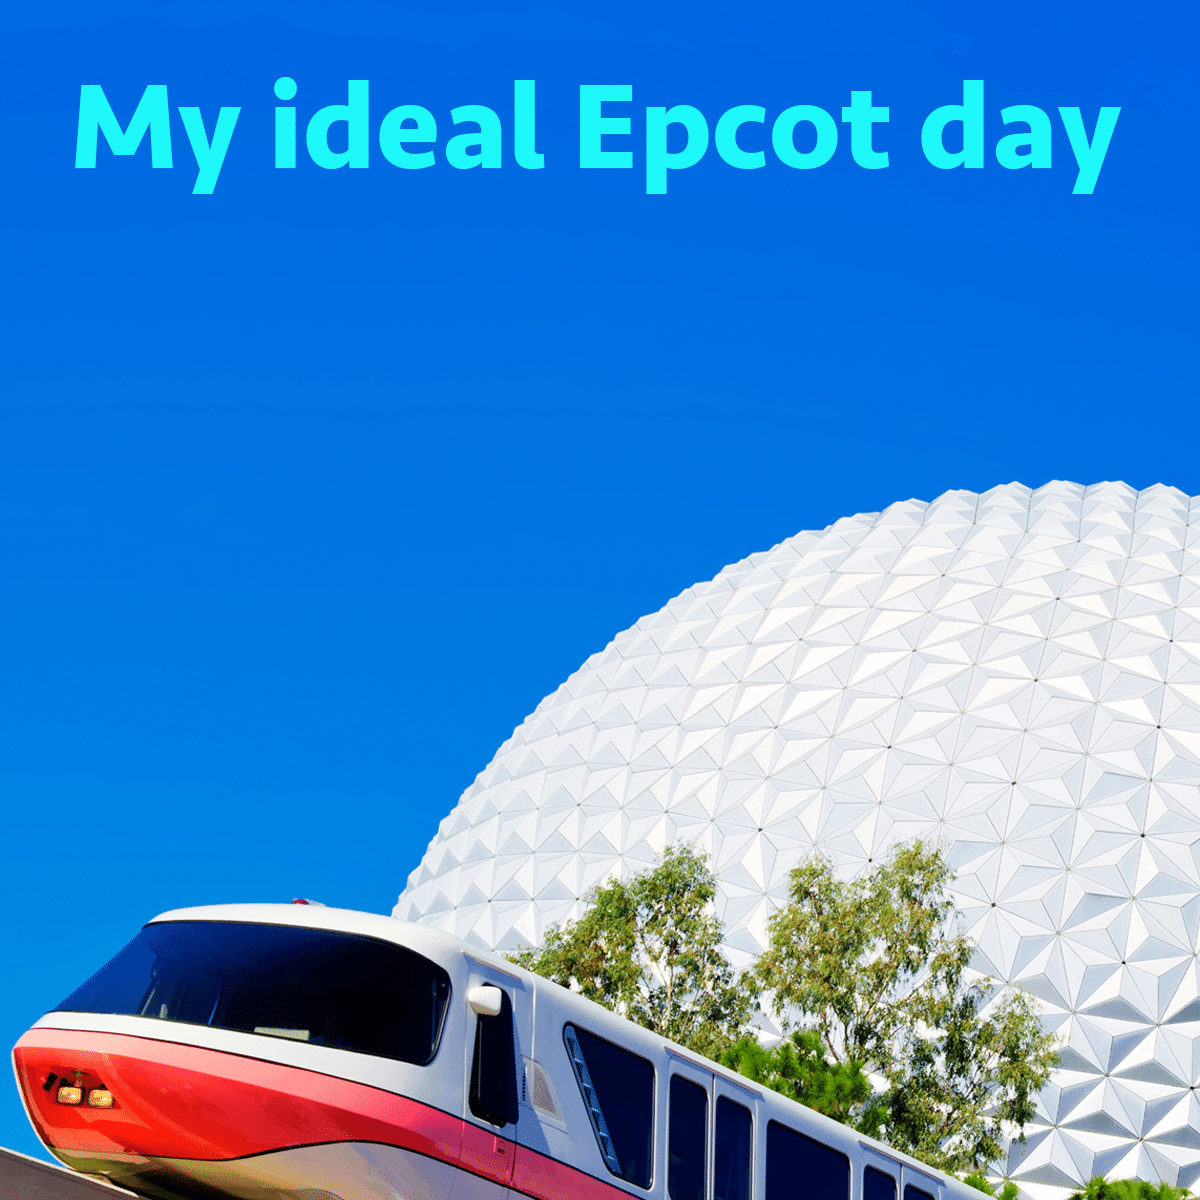 My ideal Epcot day